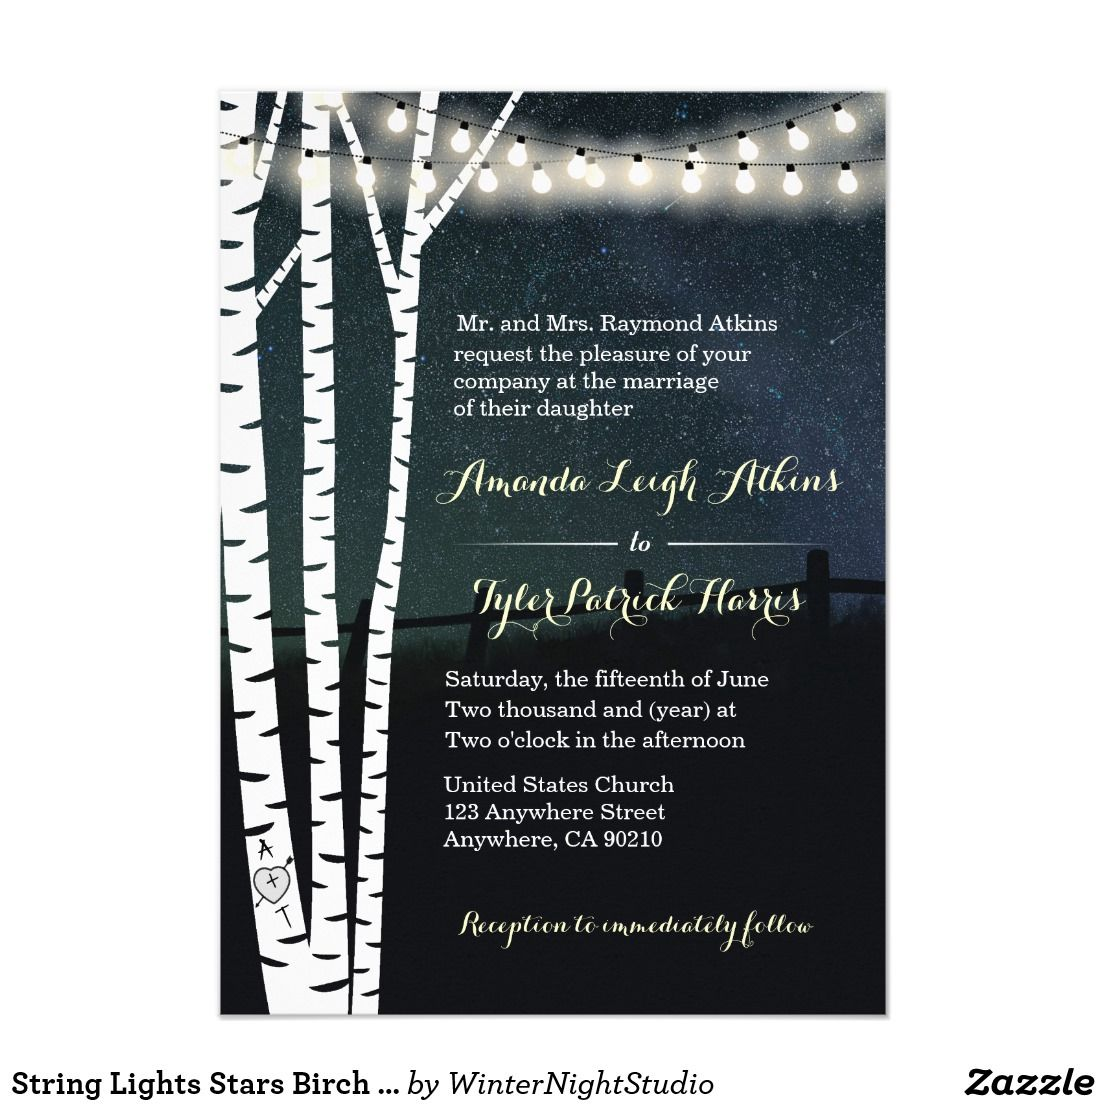 String Lights Stars Birch Tree Wedding Invitations Starry String ...